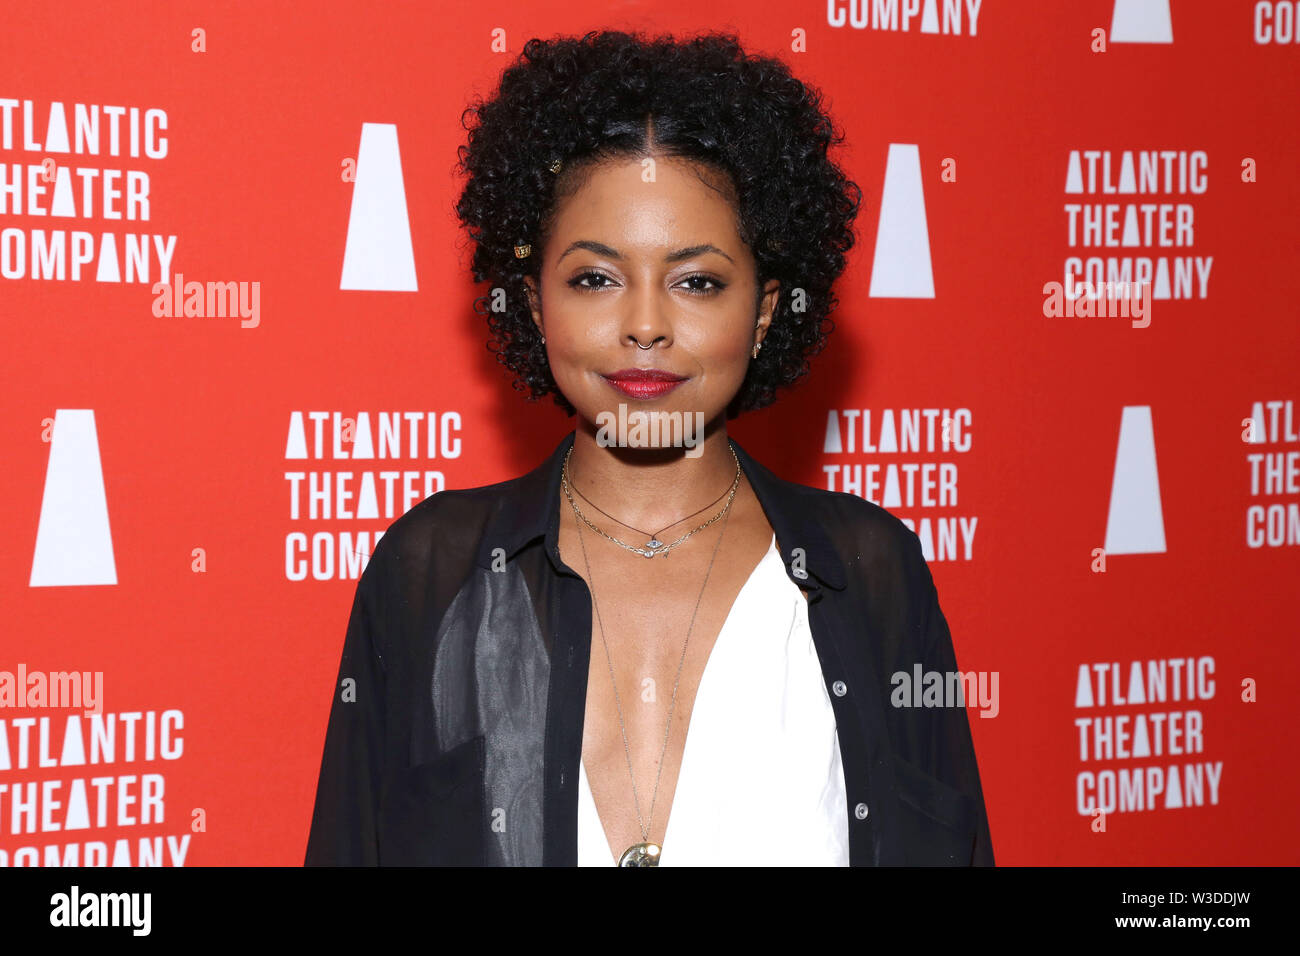 Opening night party for The Secret Life Of Bees held at Smithfield Hall - Arrivals. Featuring: Adrienne Warren Where: New York, New York, United States When: 13 Jun 2019 Credit: Joseph Marzullo/WENN.com - Stock Image